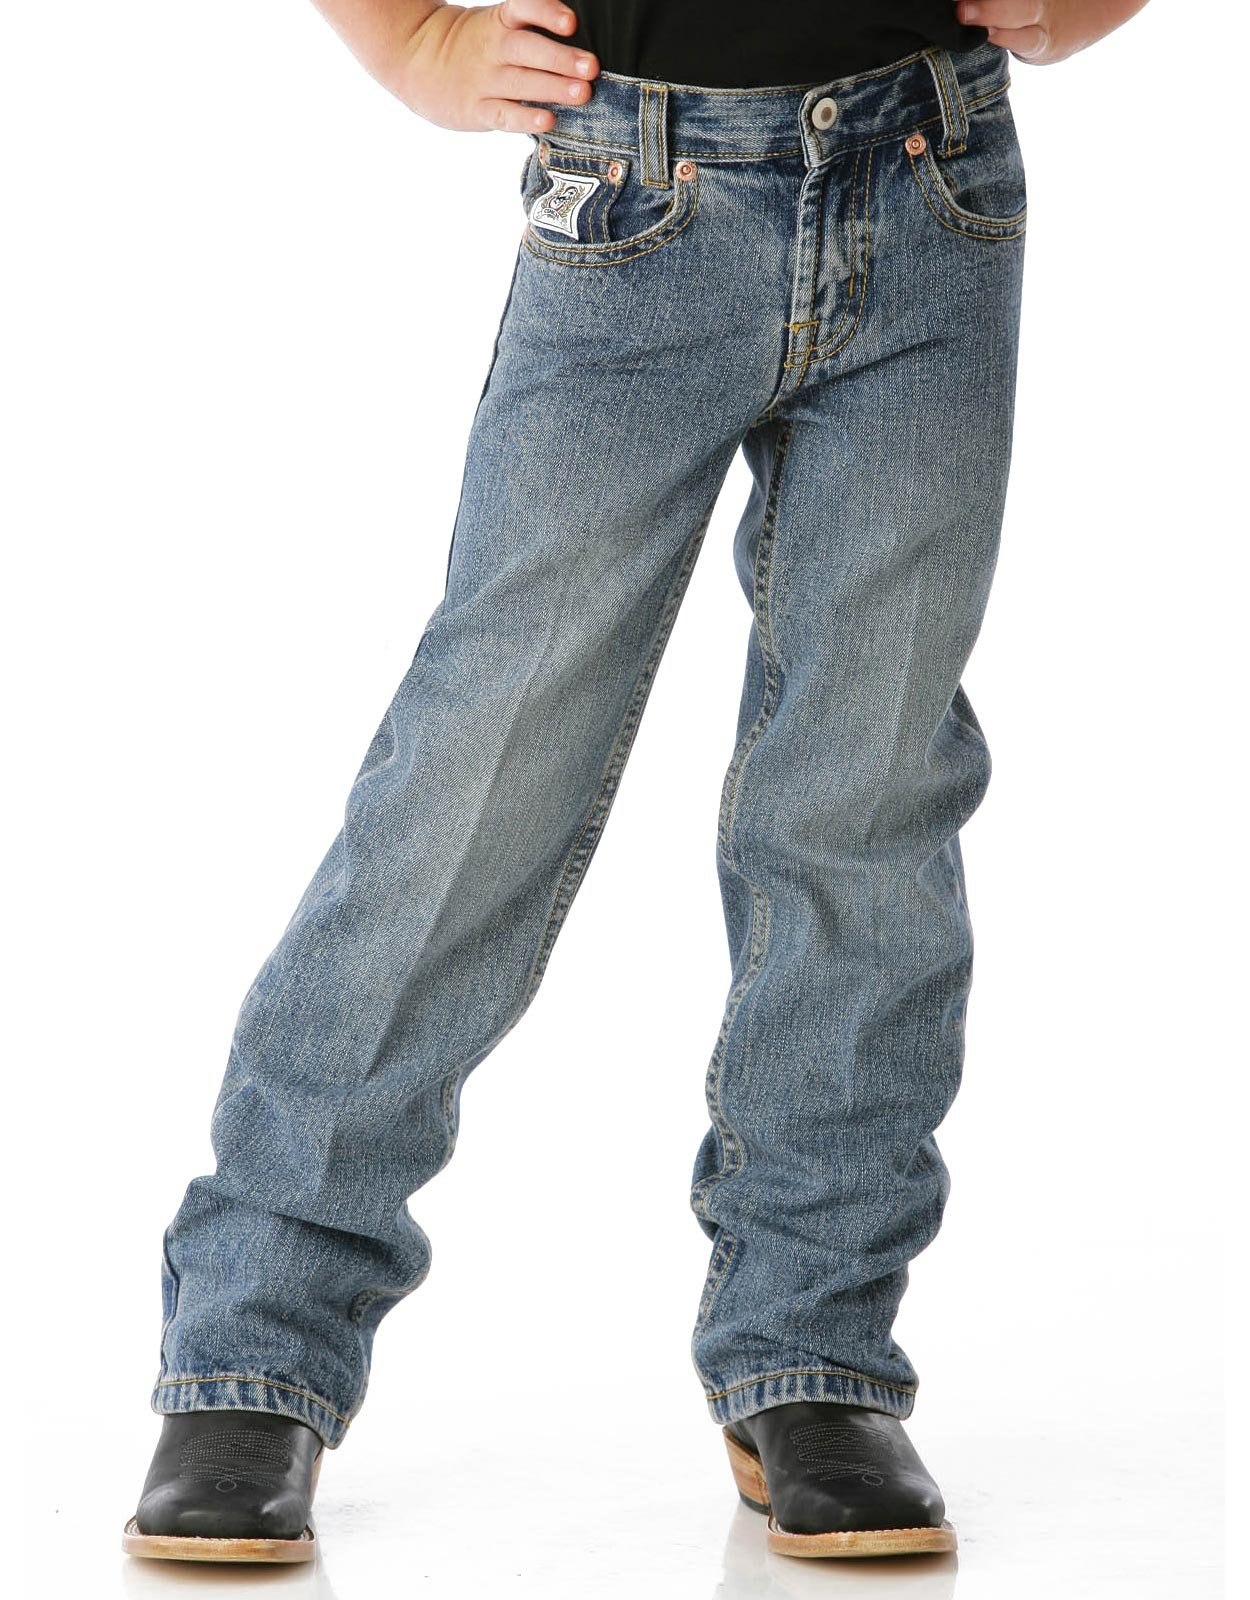 Cinch Boy's White Label Mid Rise Relaxed Fit Straight Leg Jeans (Sizes 4-7) - Light Stonewash